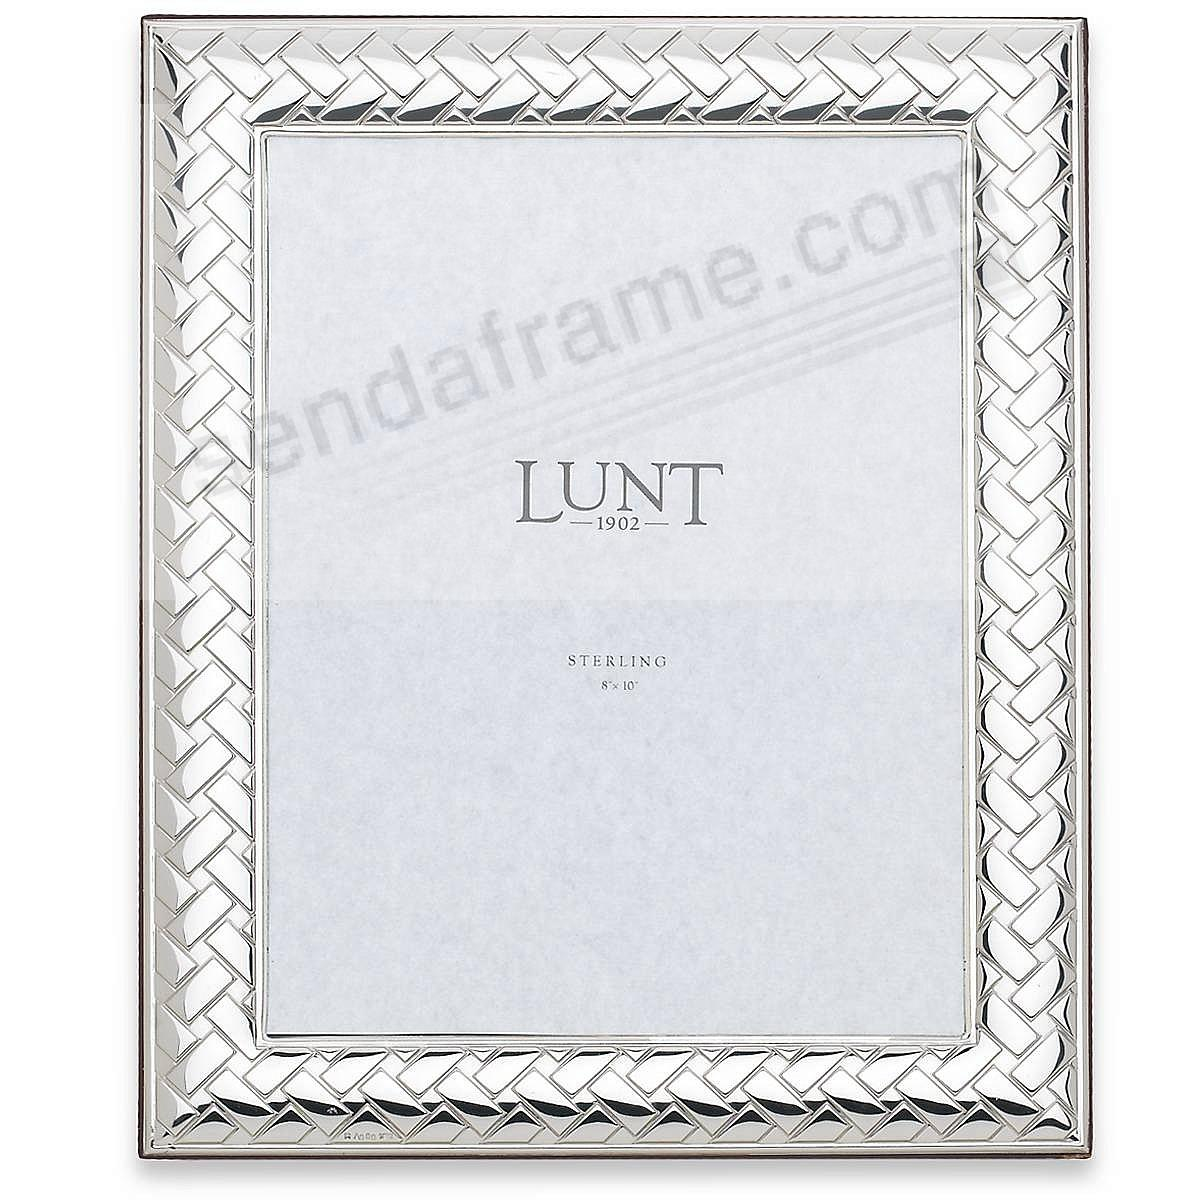 DEVON Fine Sterling Silver by Lunt Silversmiths® for 8x10 photos